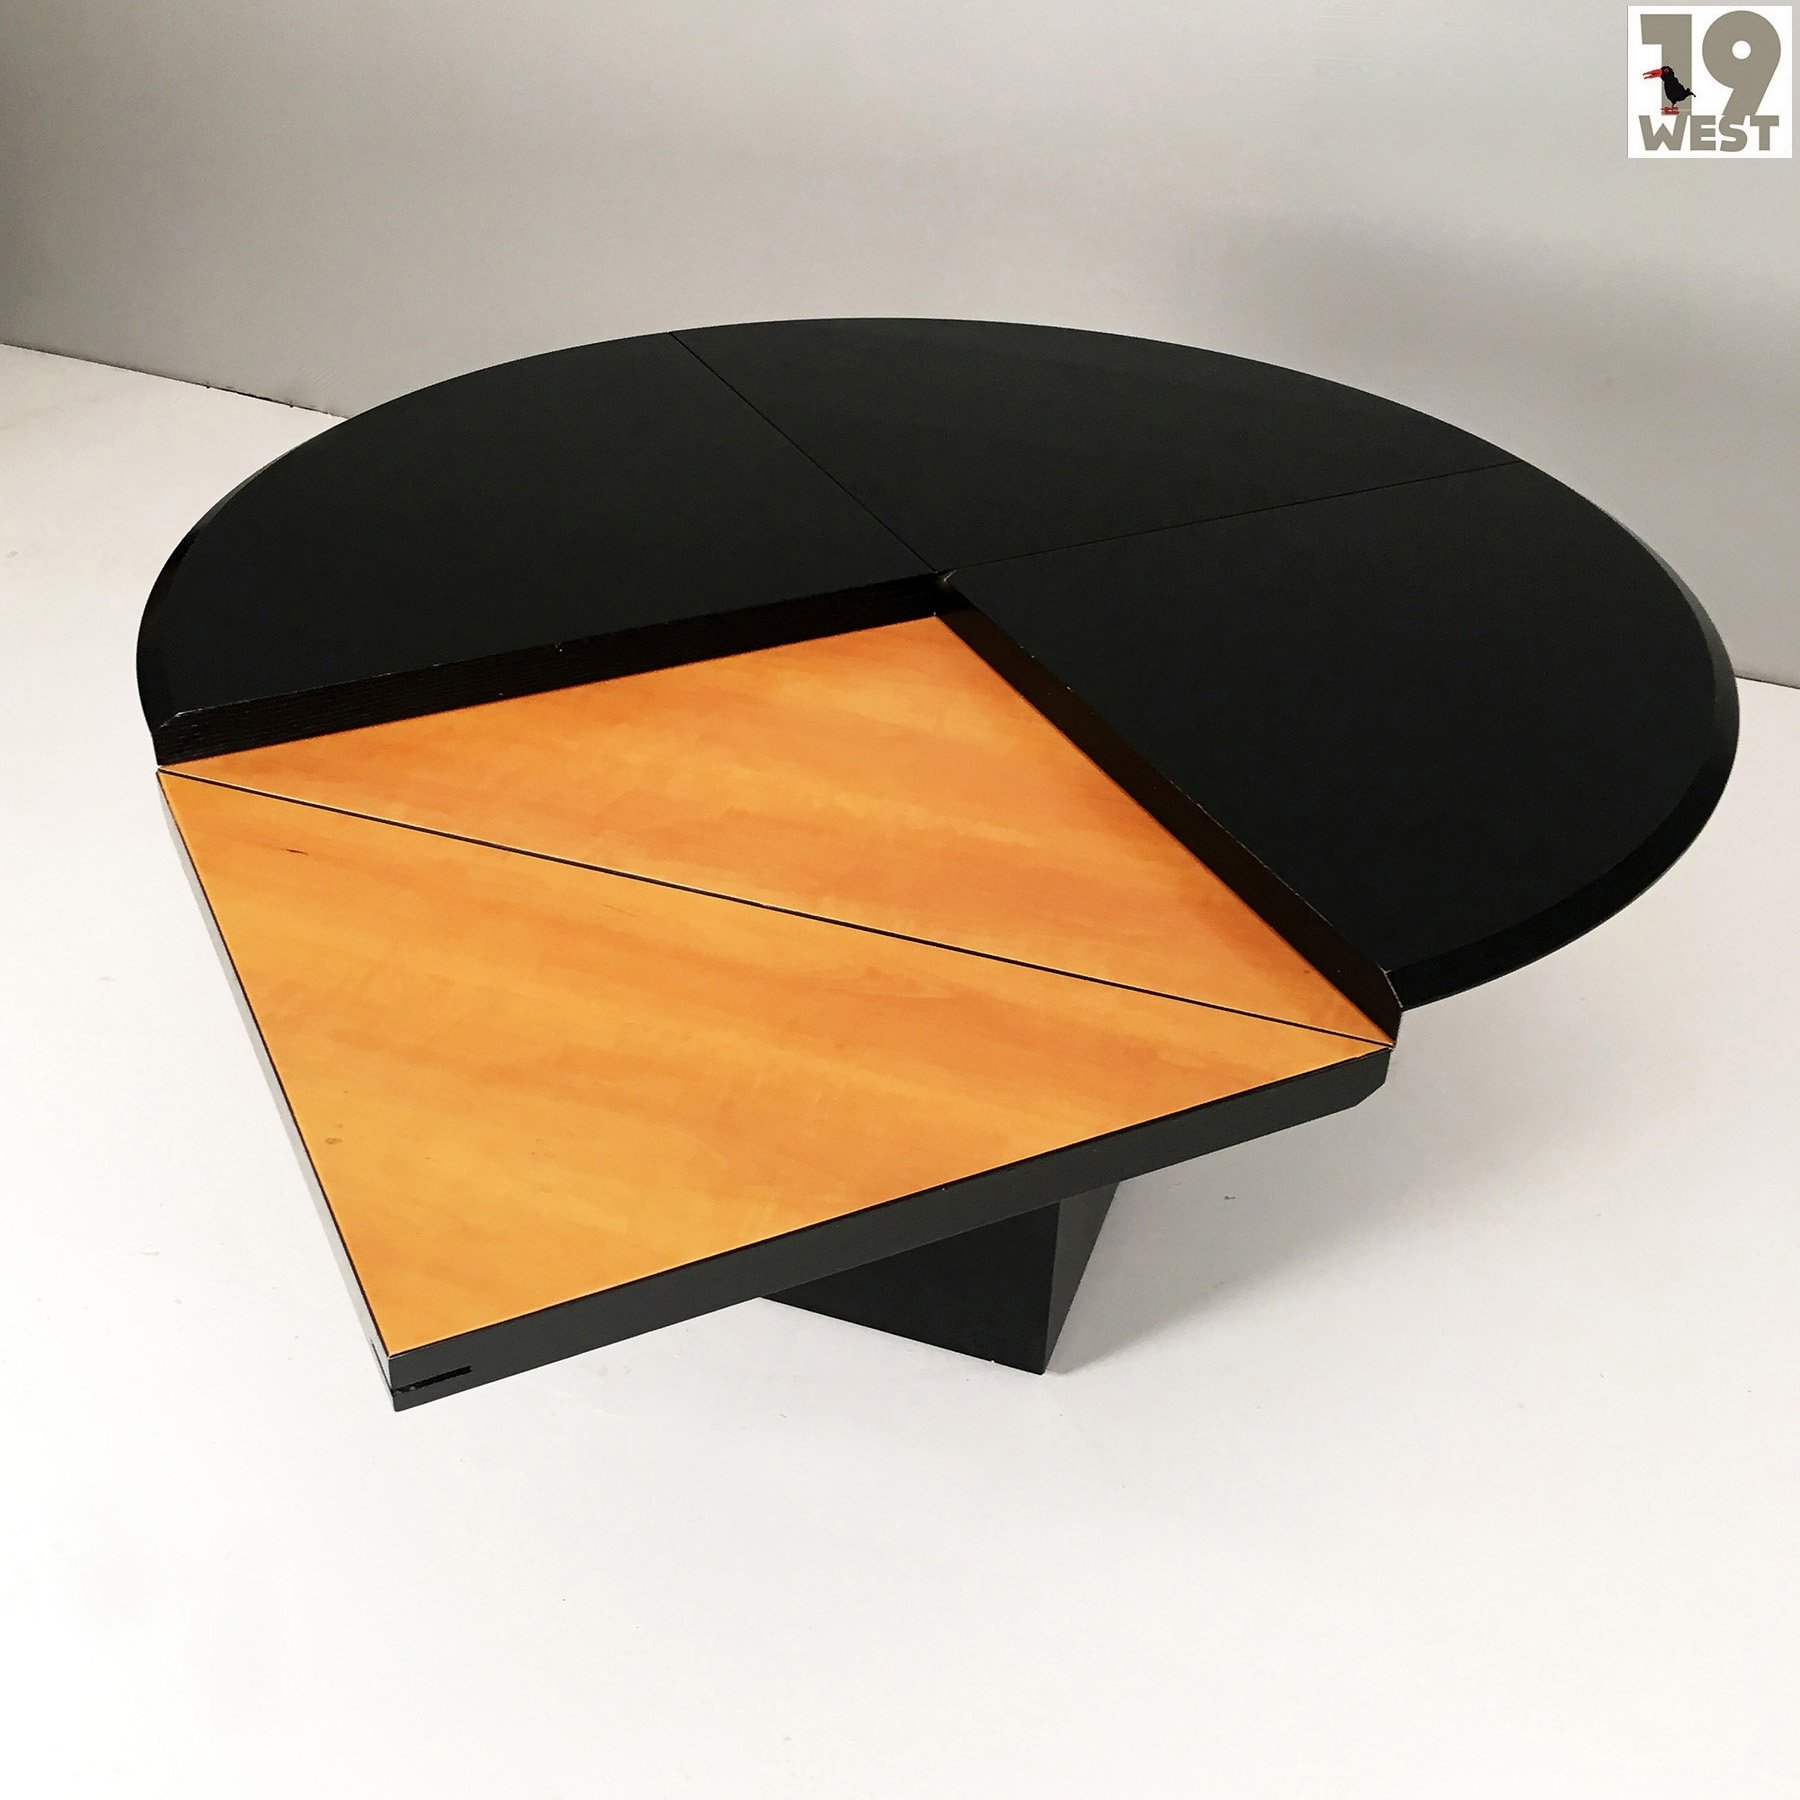 Round Square Dining Table Quadrondo Table By Erwin Nagel For Rosenthal 103433